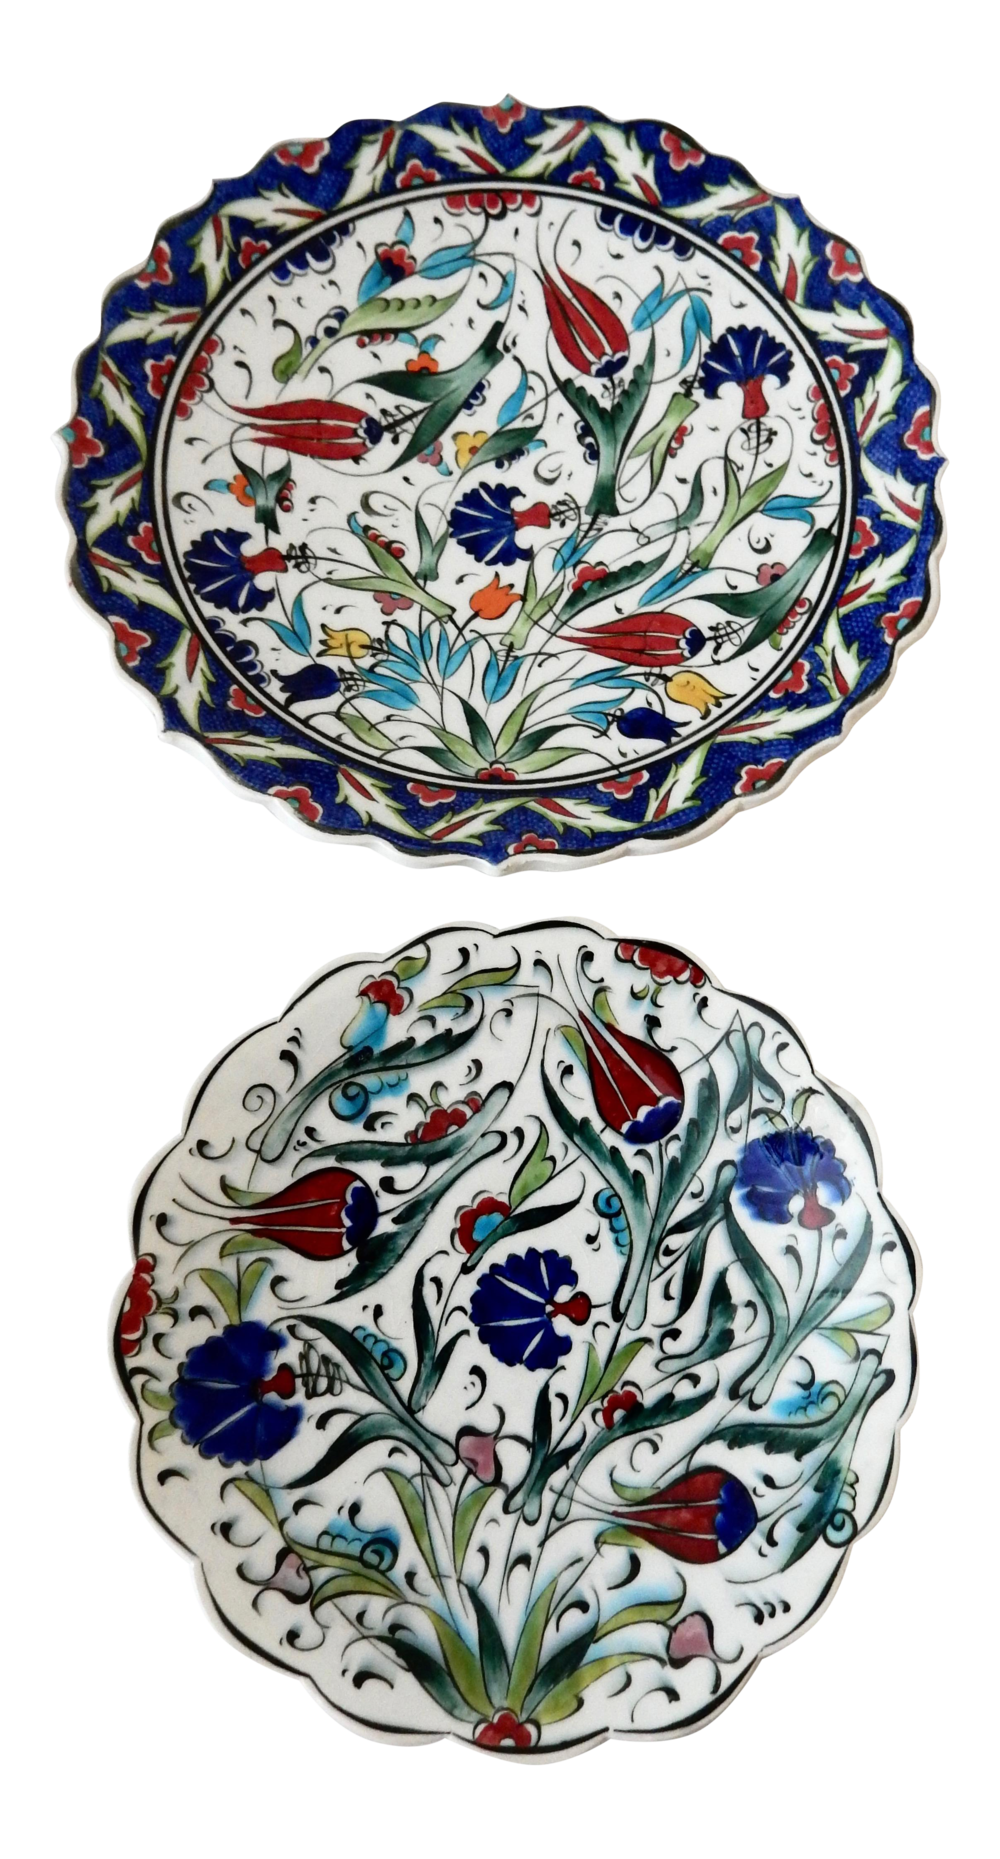 ottoman-iznik-carnation-and-tulip-pattern-plates-pair-0448.png